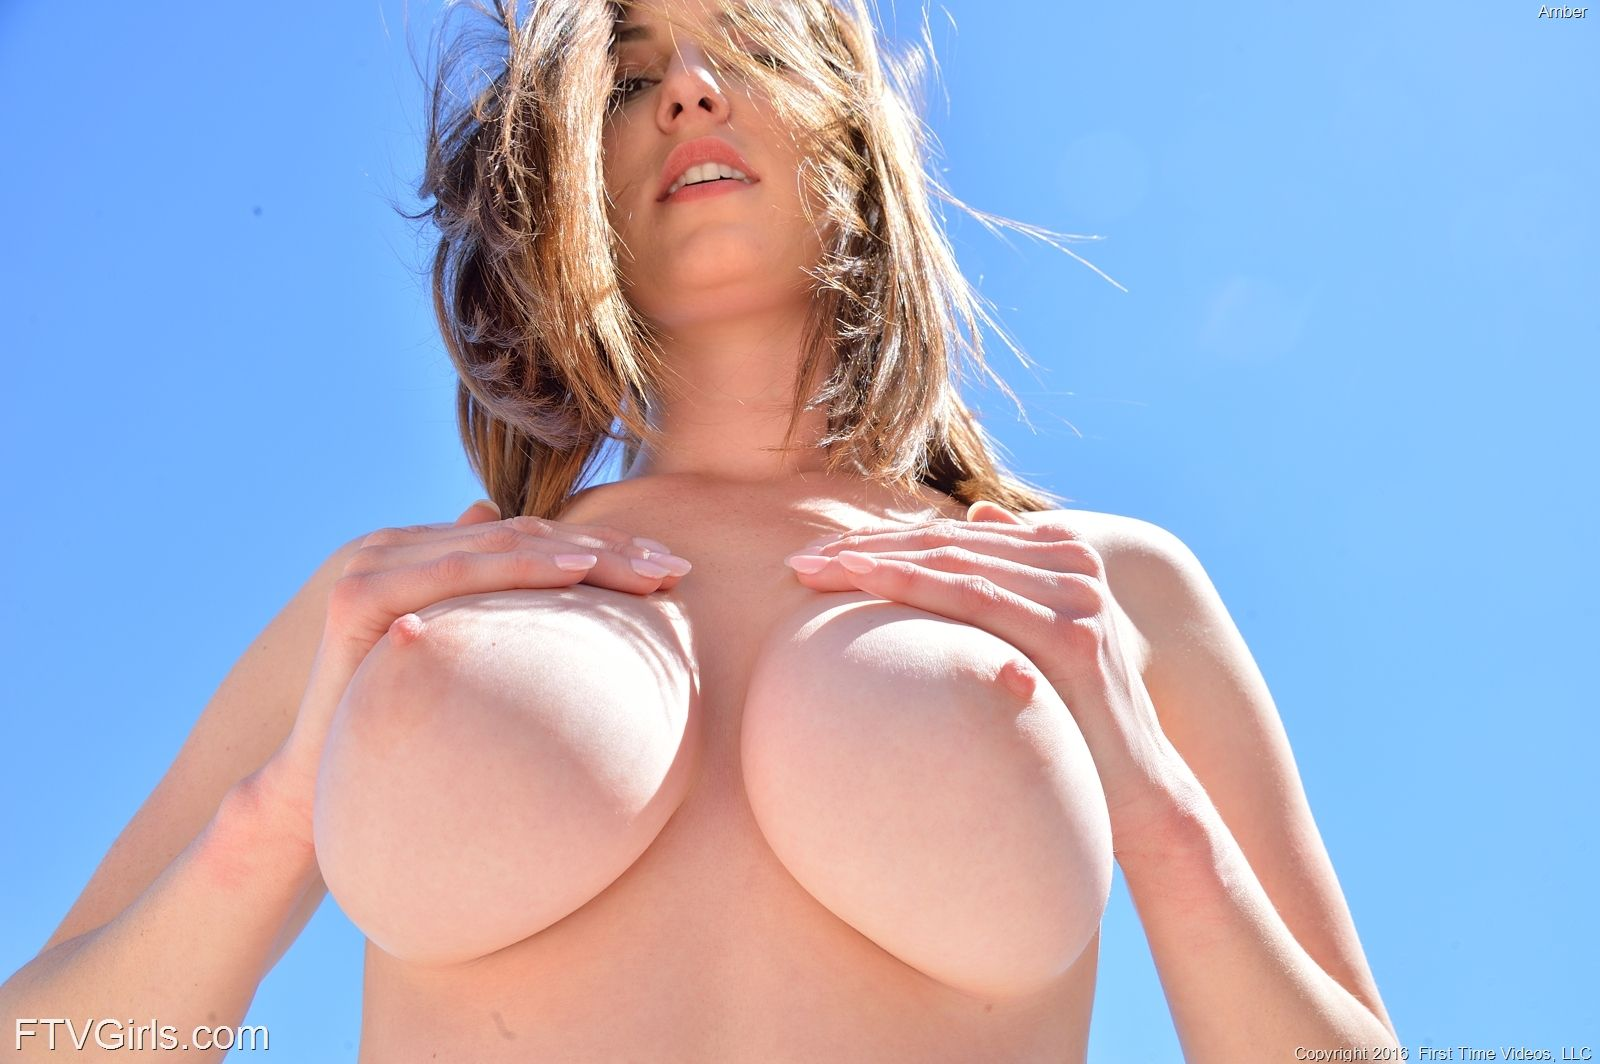 Amber - PERFECT CURVES 03